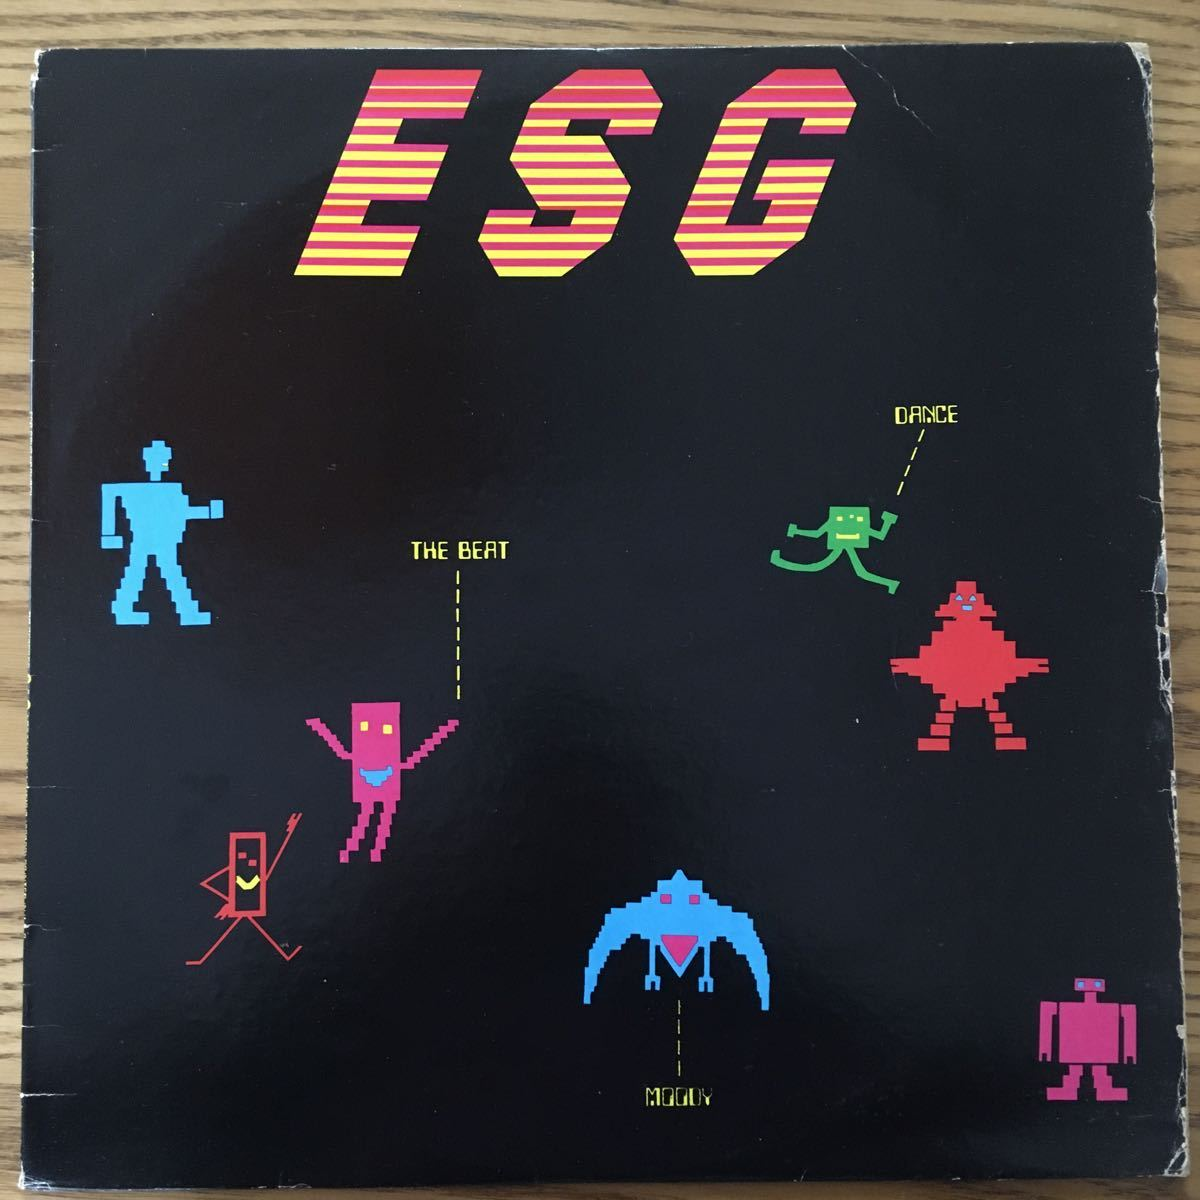 【LP】ESG/ESG SAYS DANCE TO THE BEAT OF MOODY[US ORI:99records:MASTERDISK刻印]★NO NEW YORK SUICIDE 坂本慎太郎 YOUNG MARBLE GIANTS_画像1